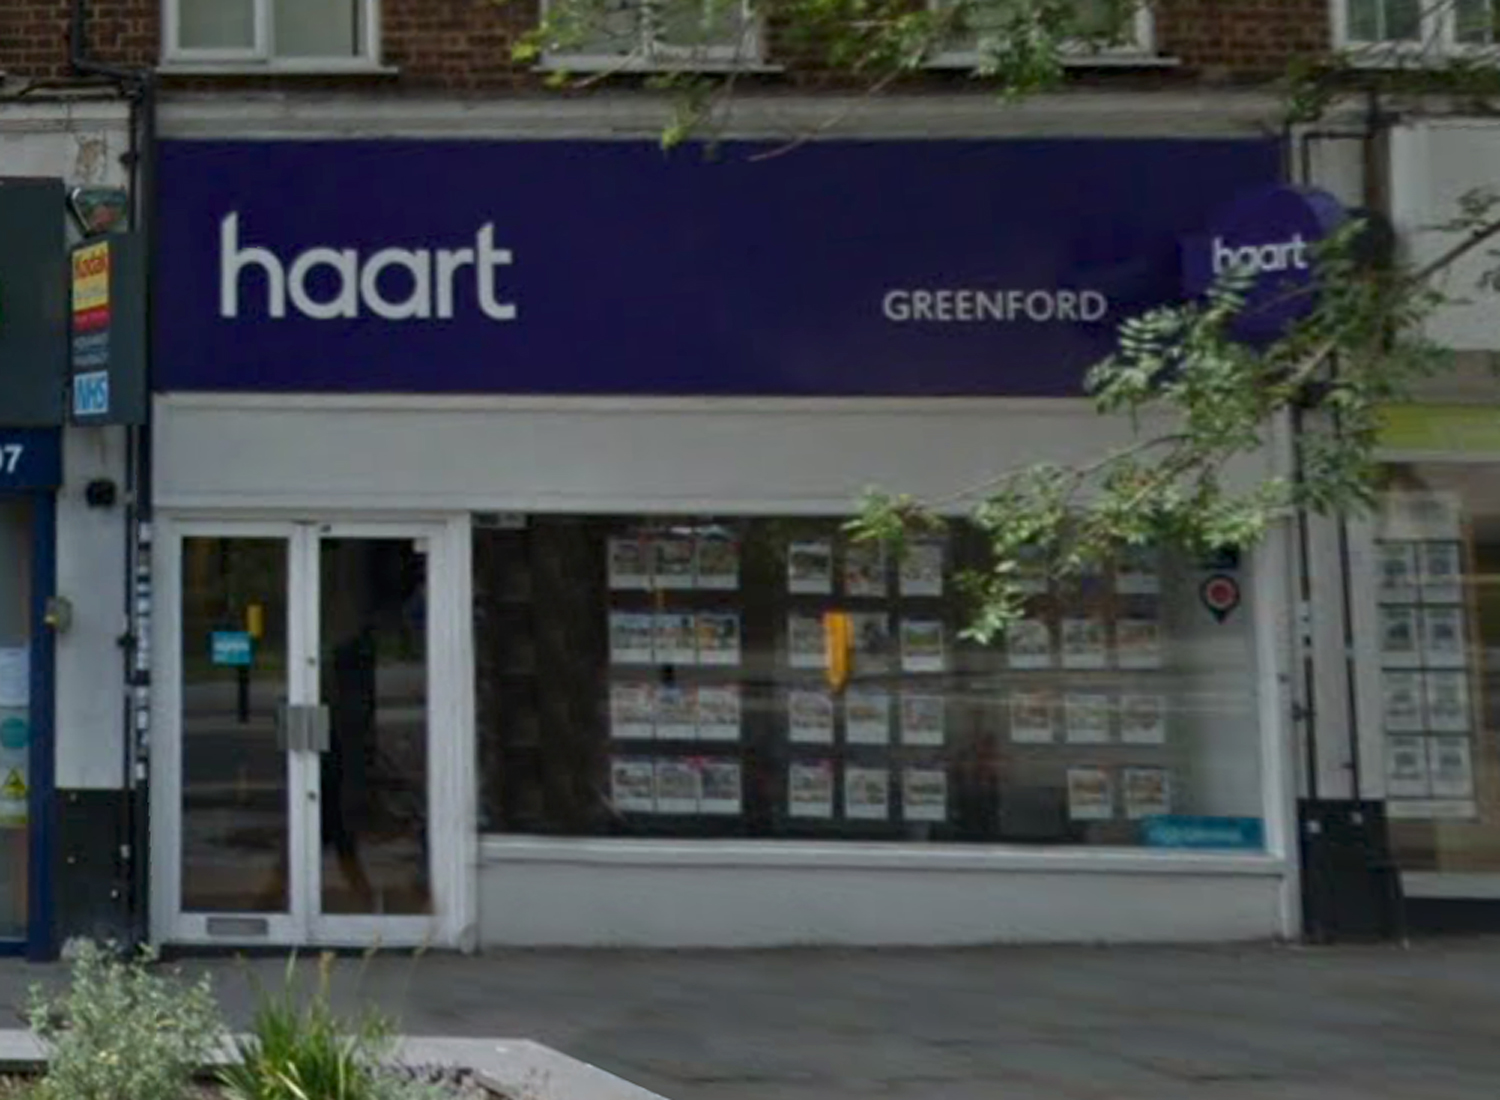 haart letting agents Greenford